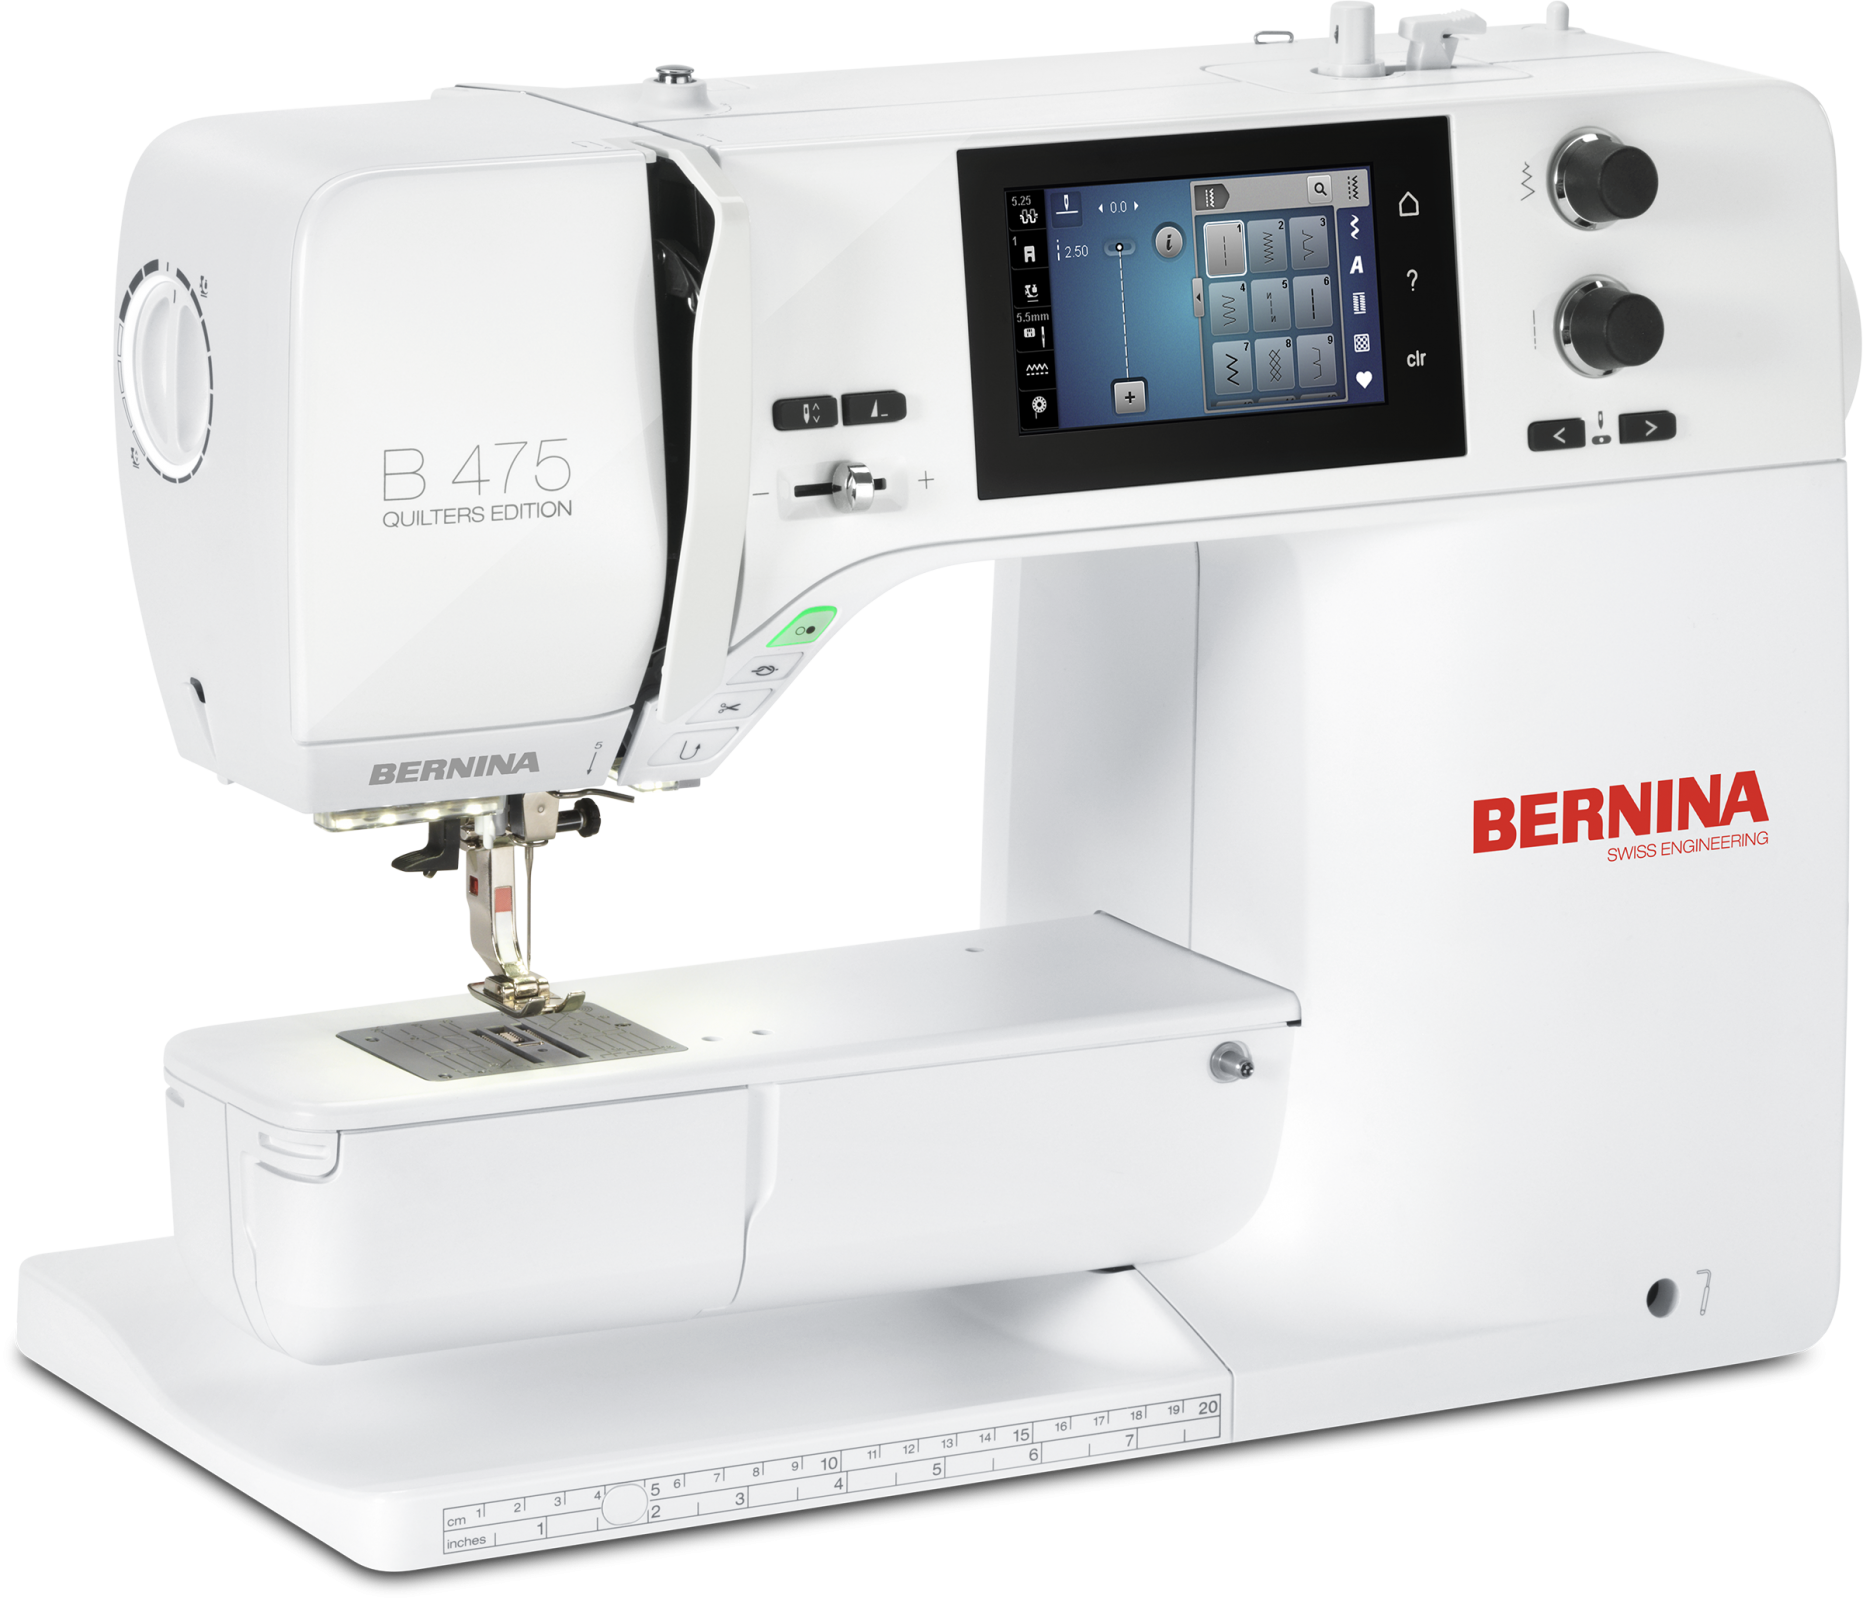 Bernina B475QE Sewing Machine